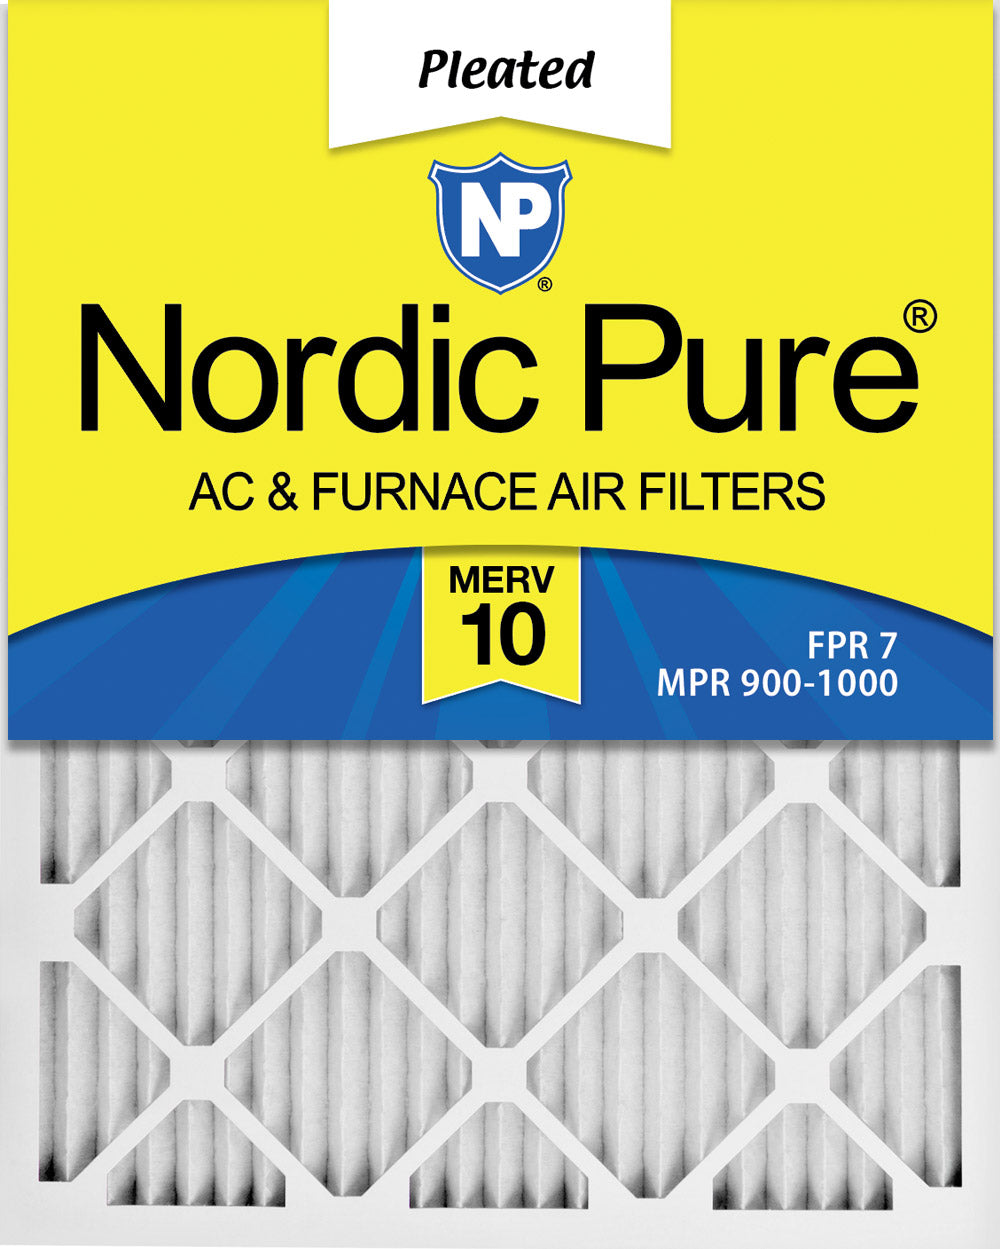 20x24x1 Pleated MERV 10 Air Filters 6 Pack